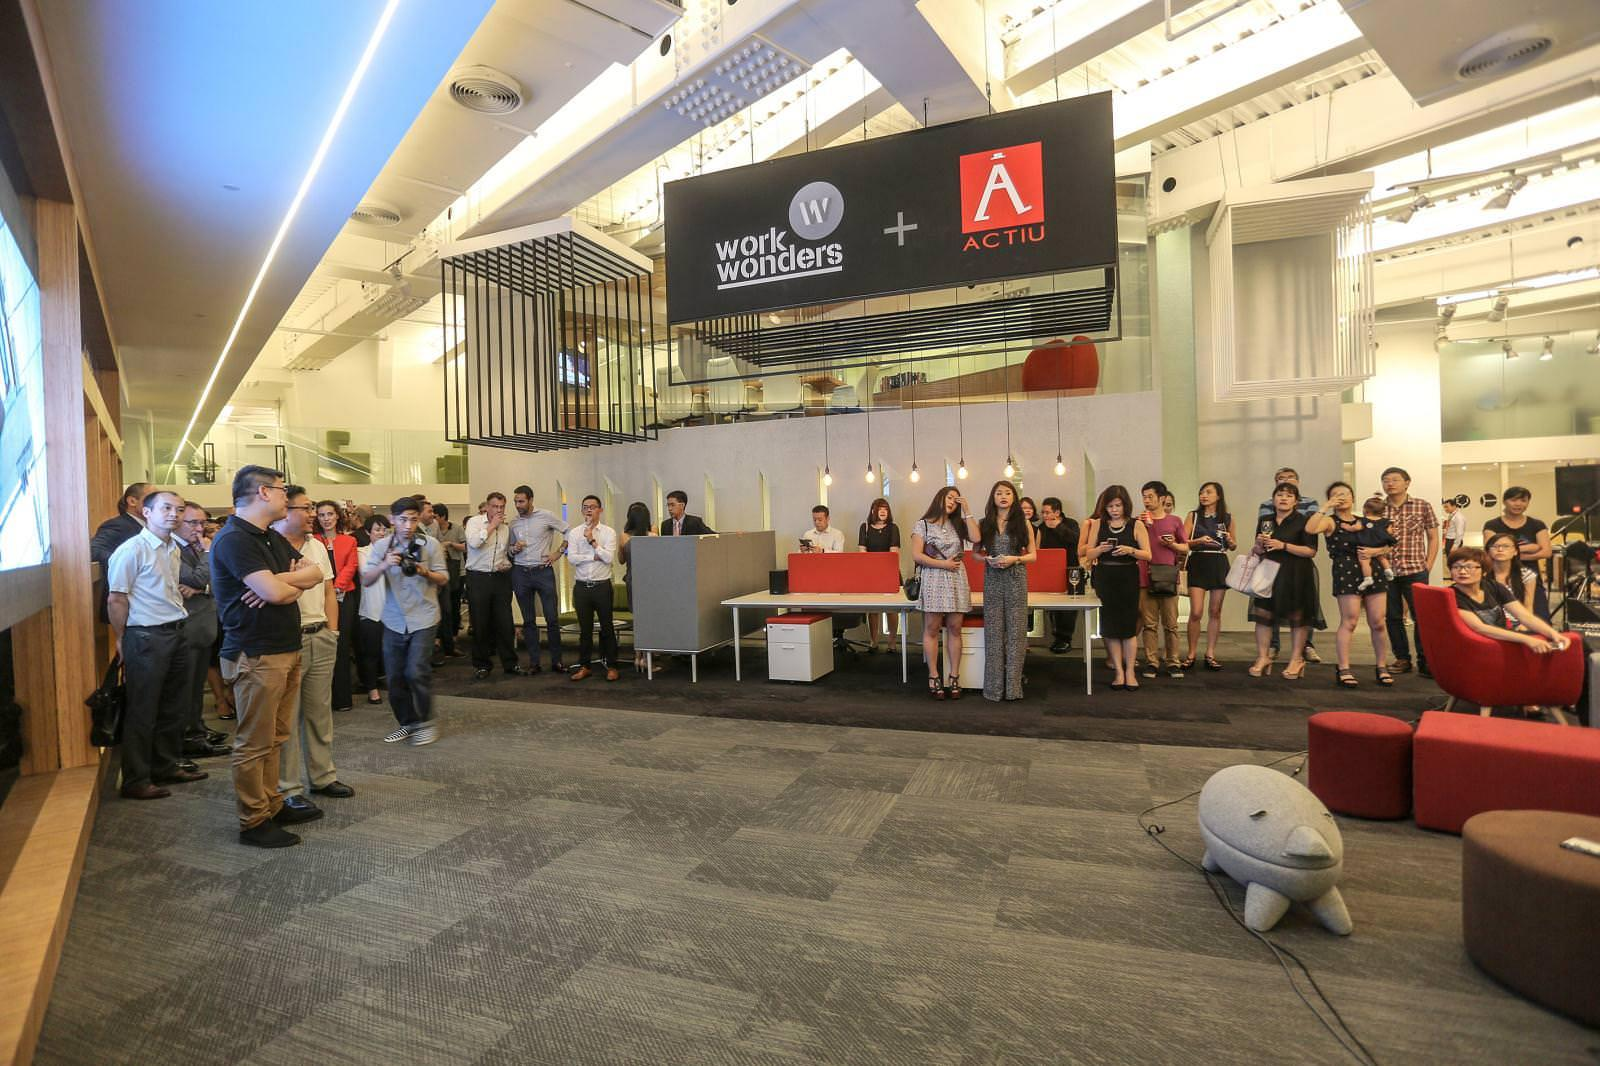 Work Wonders and Actiu join forces to walk side by side in the Chinese market 7